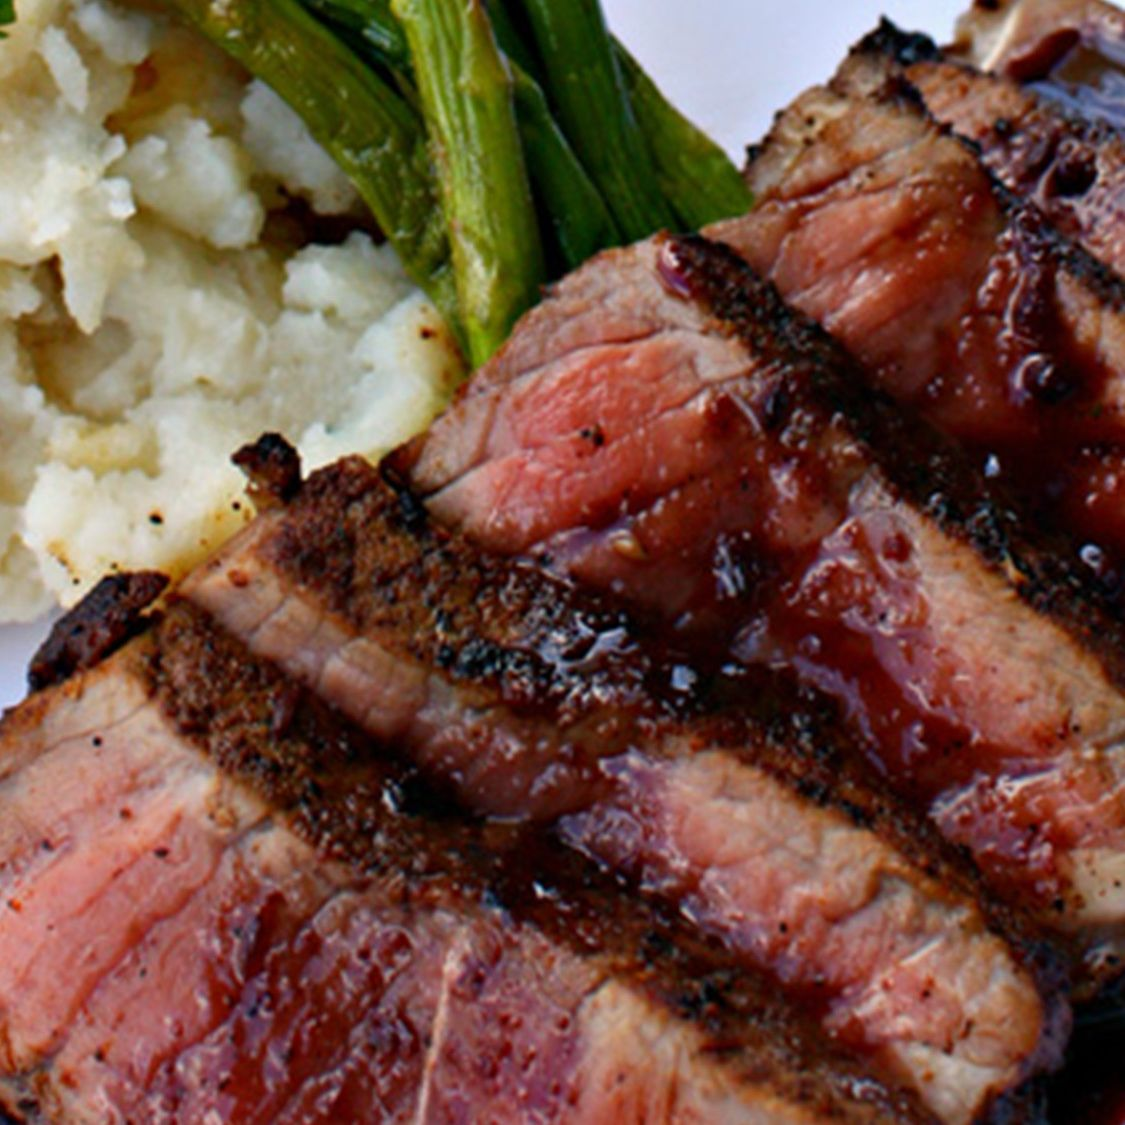 pan_seared_new_york_strip_with_red_wine_jus.jpg